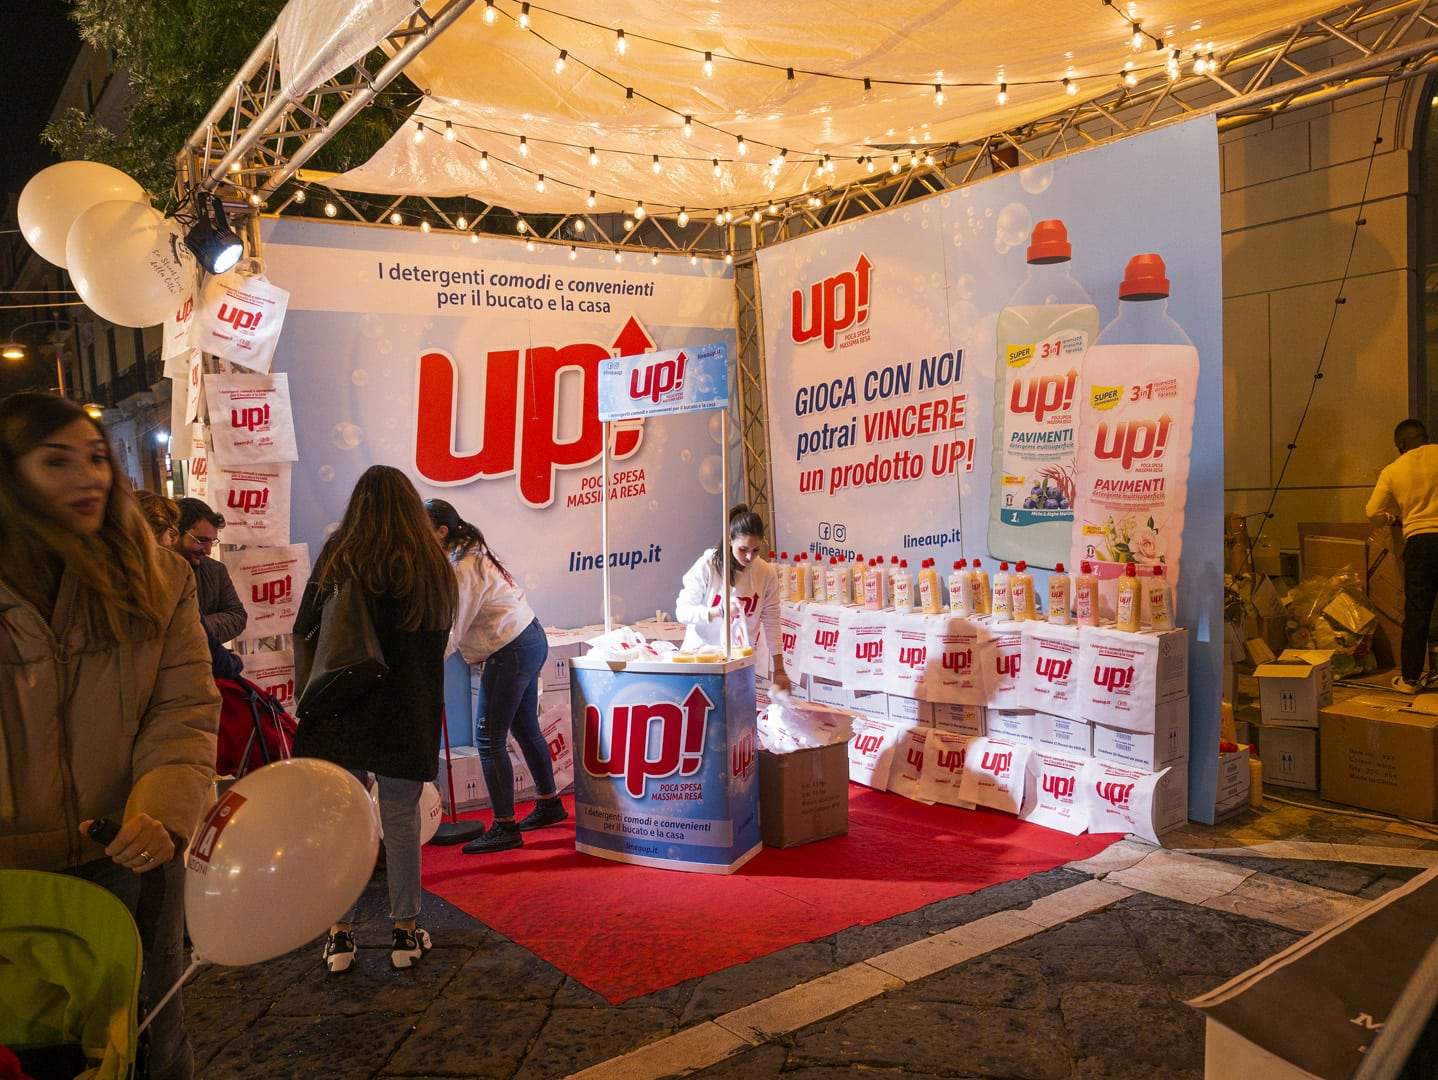 Up Detergenti - Event management by DelfiAdv